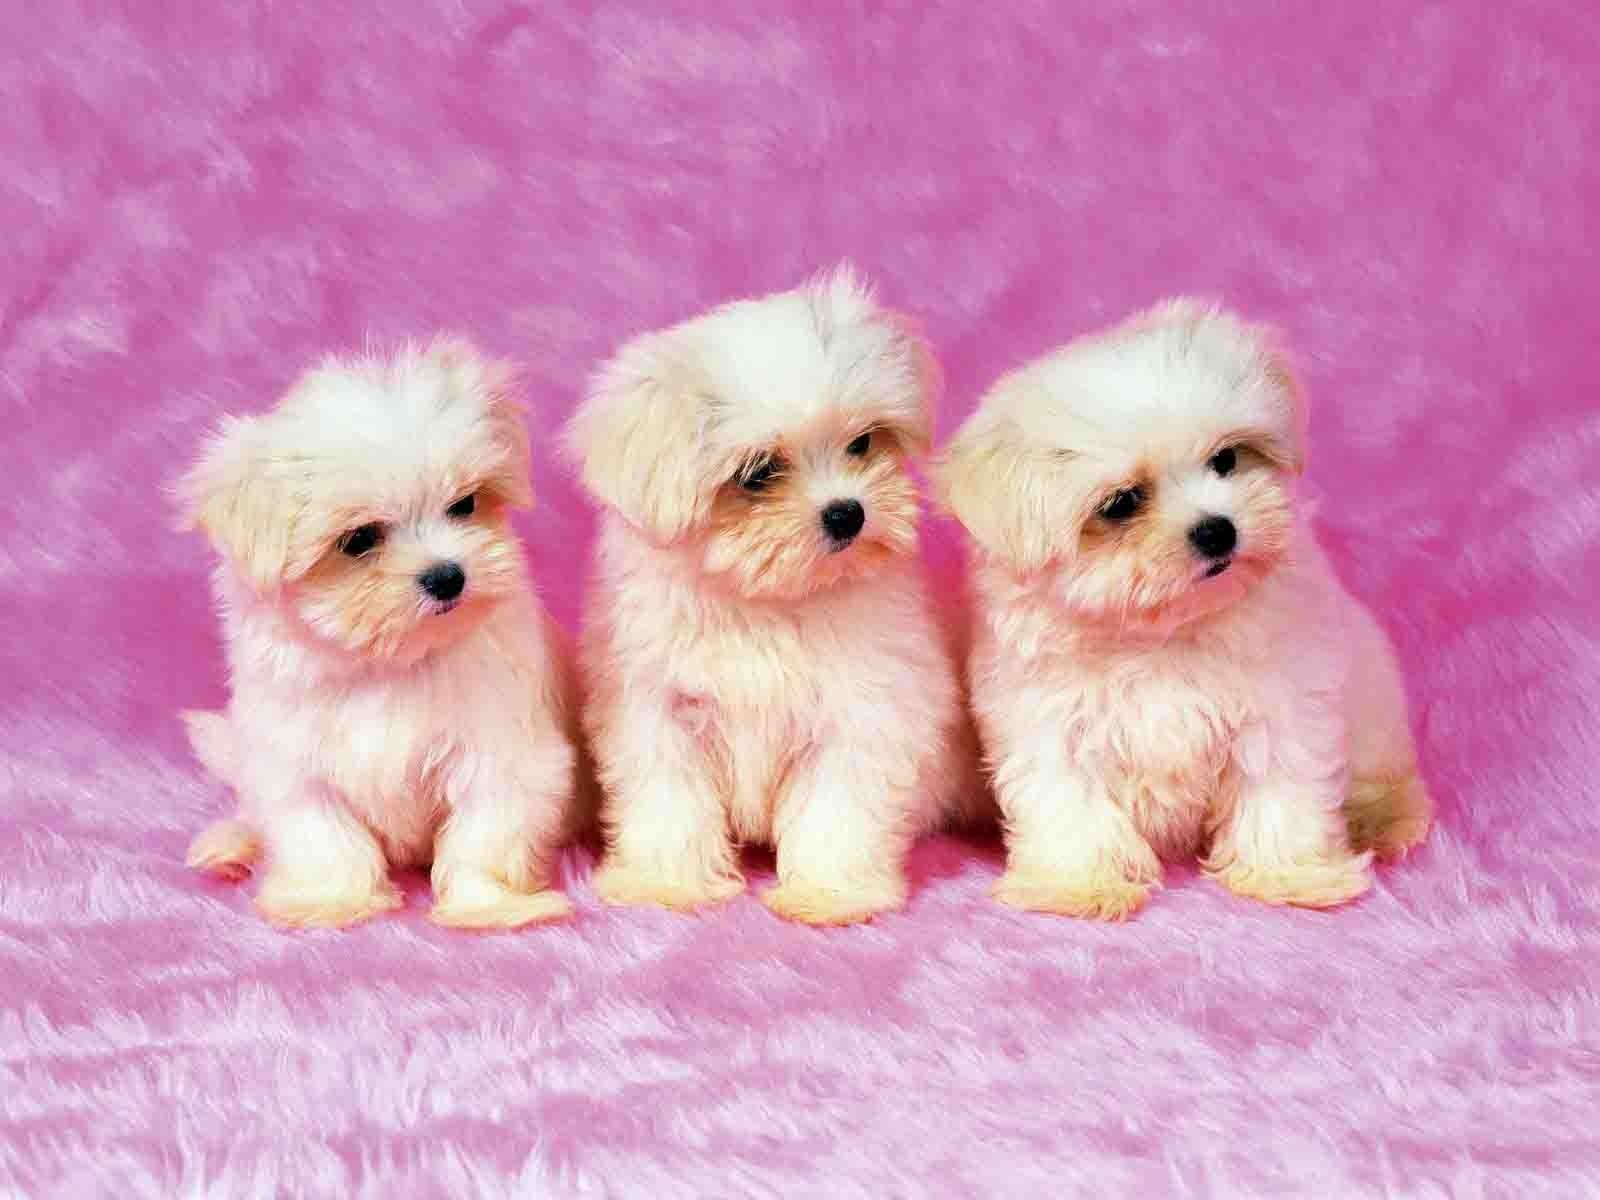 Wallpapers For Gt Pretty Tumblr Backgrounds For Girls Cute Dogs Cute Cats Cute Puppy Wallpaper